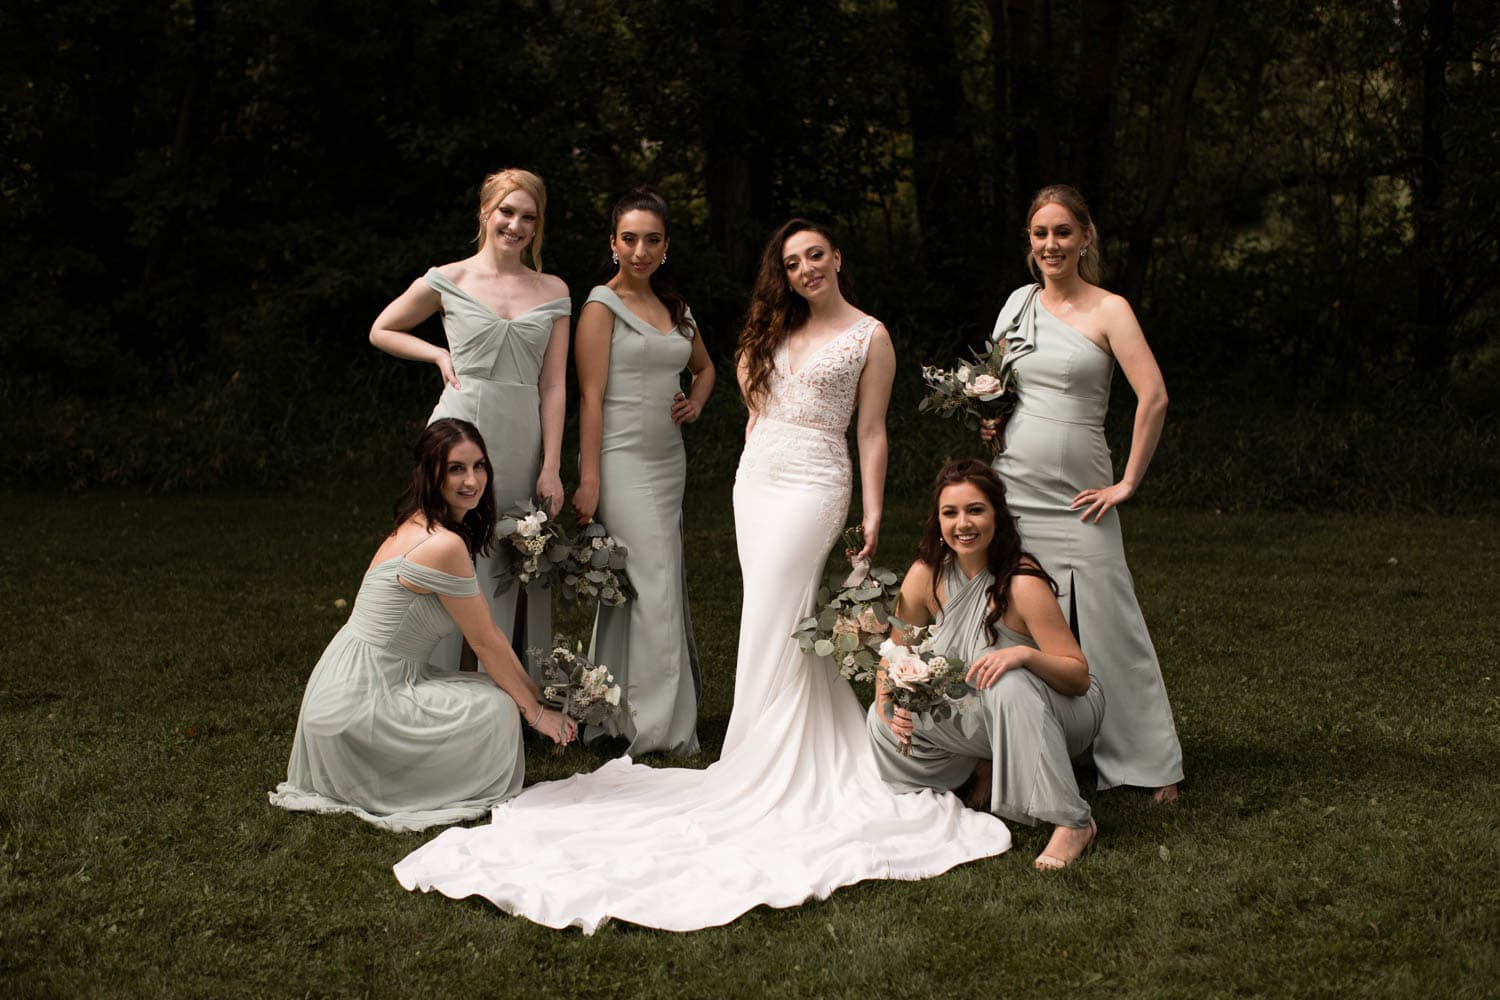 Calgary bridal party photos